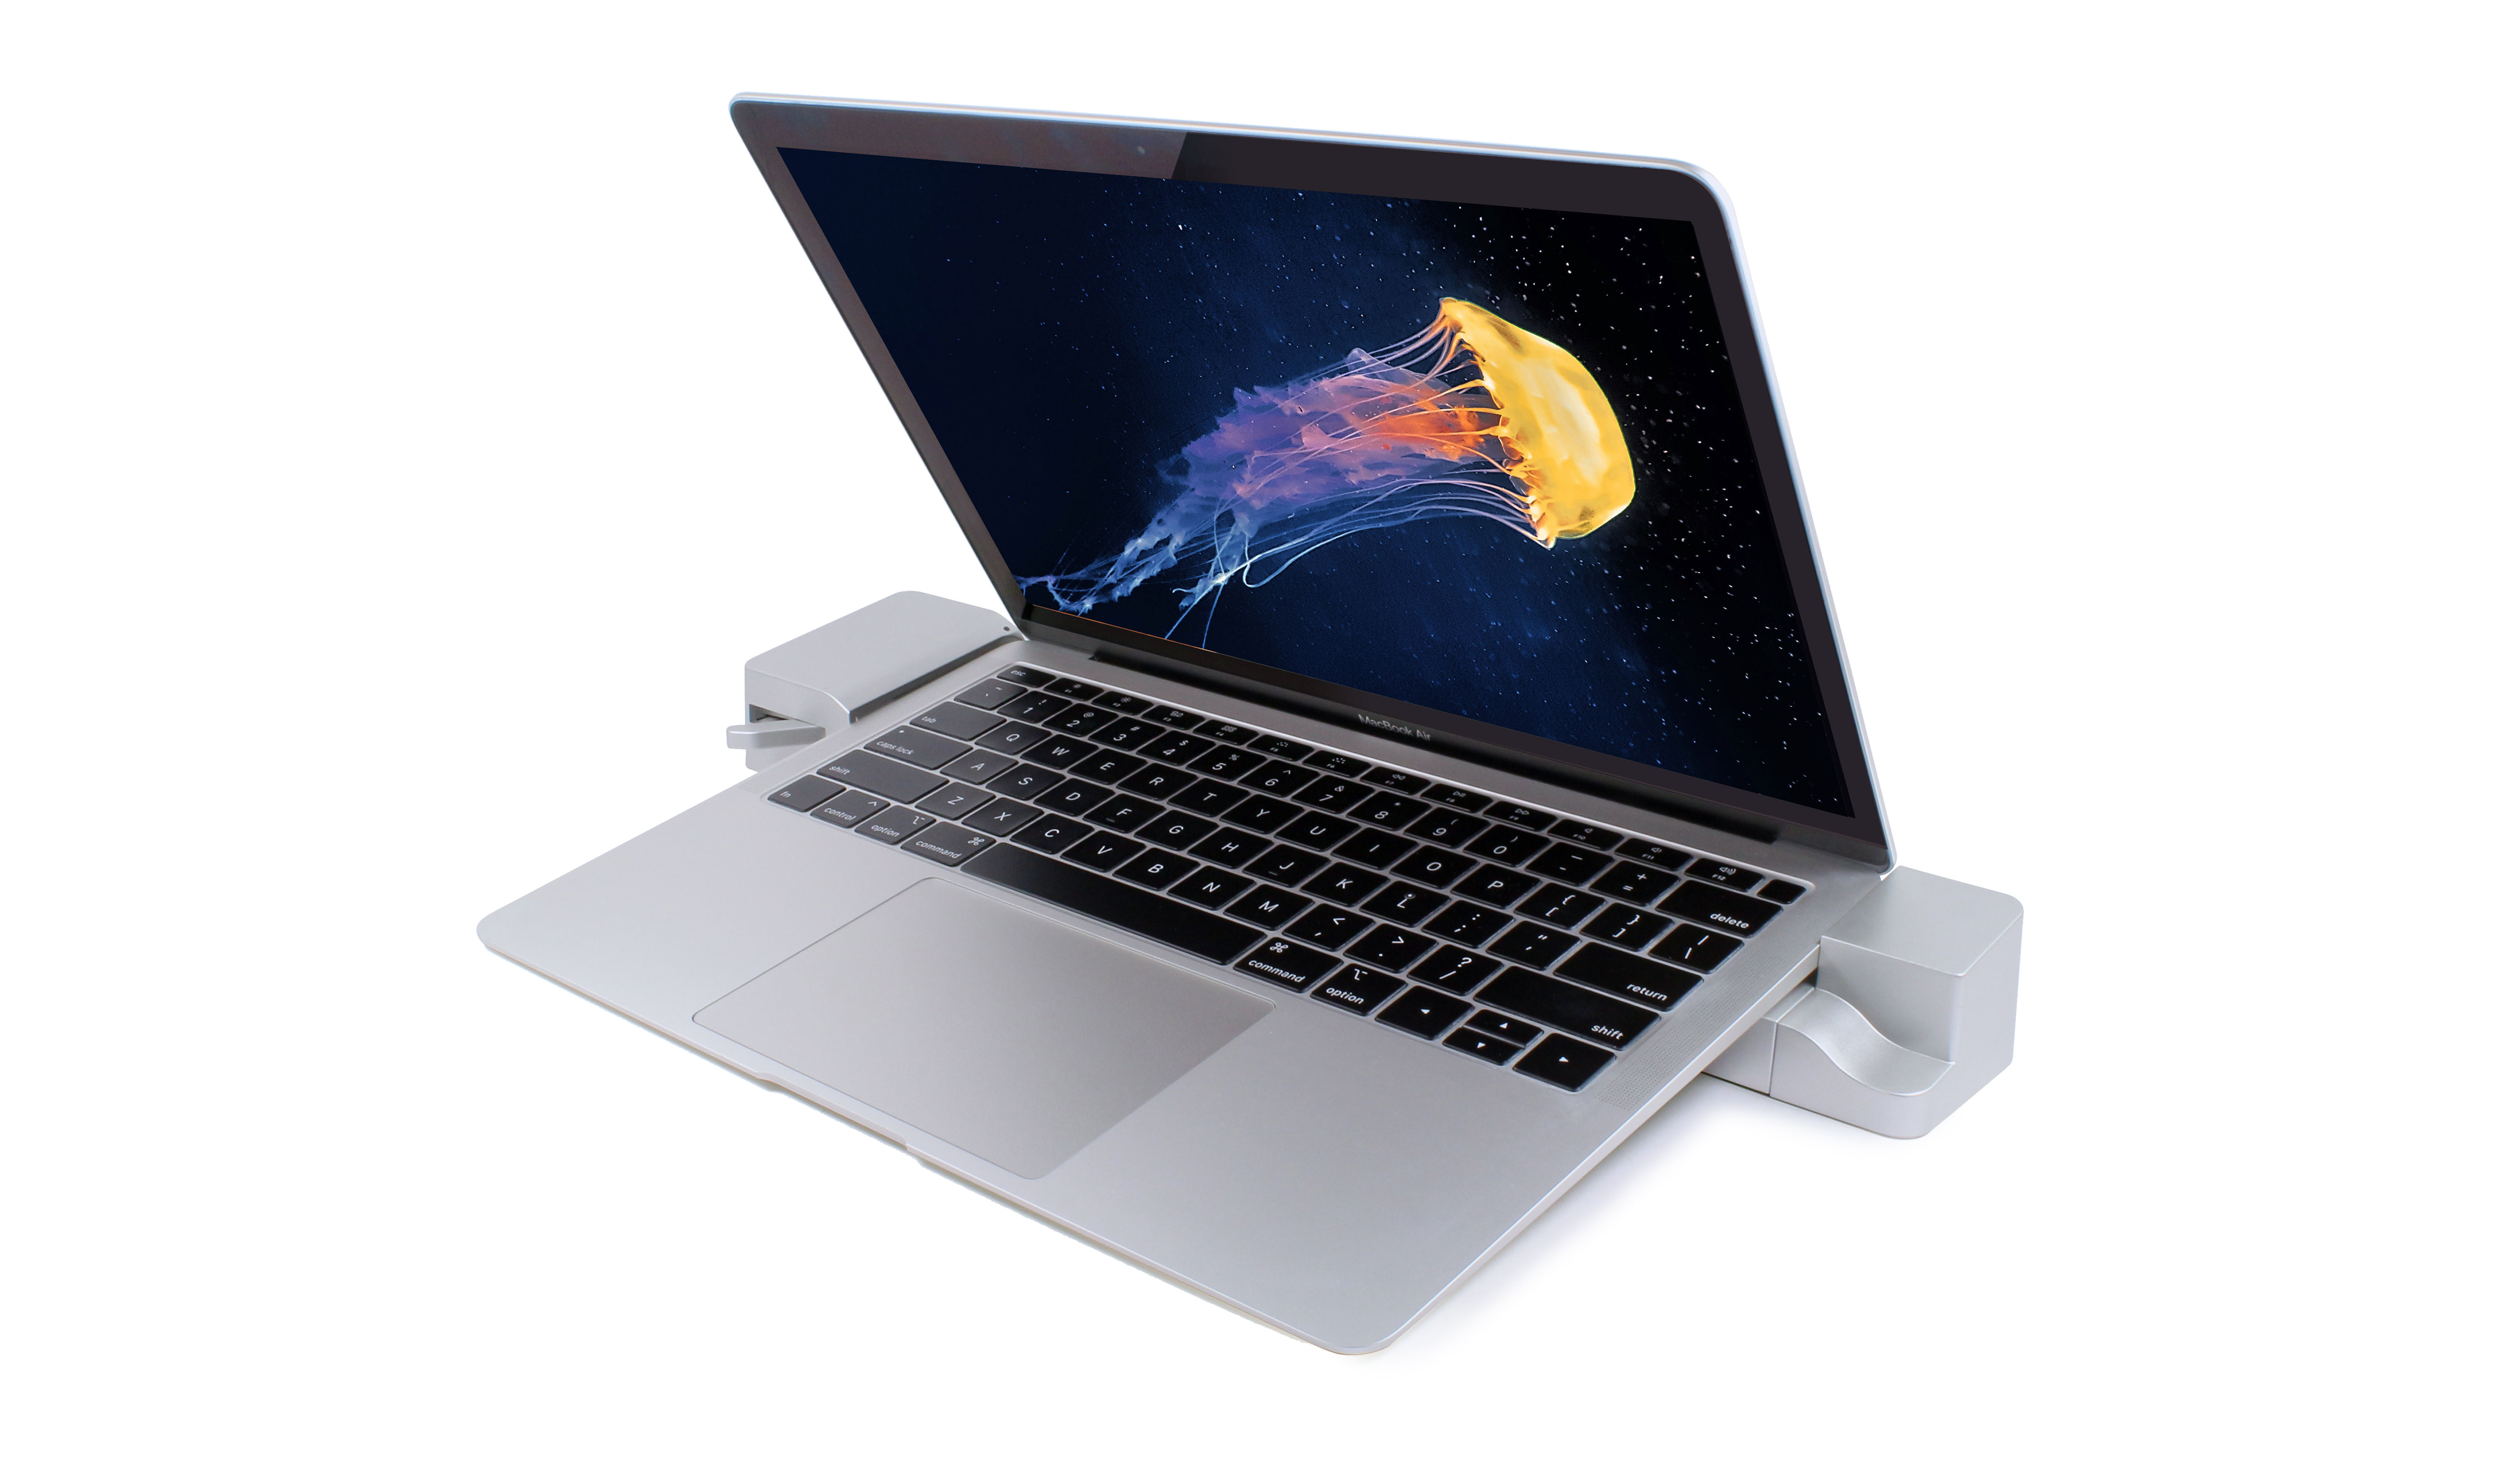 Docking Station for the 13-inch MacBook Air - Docked View